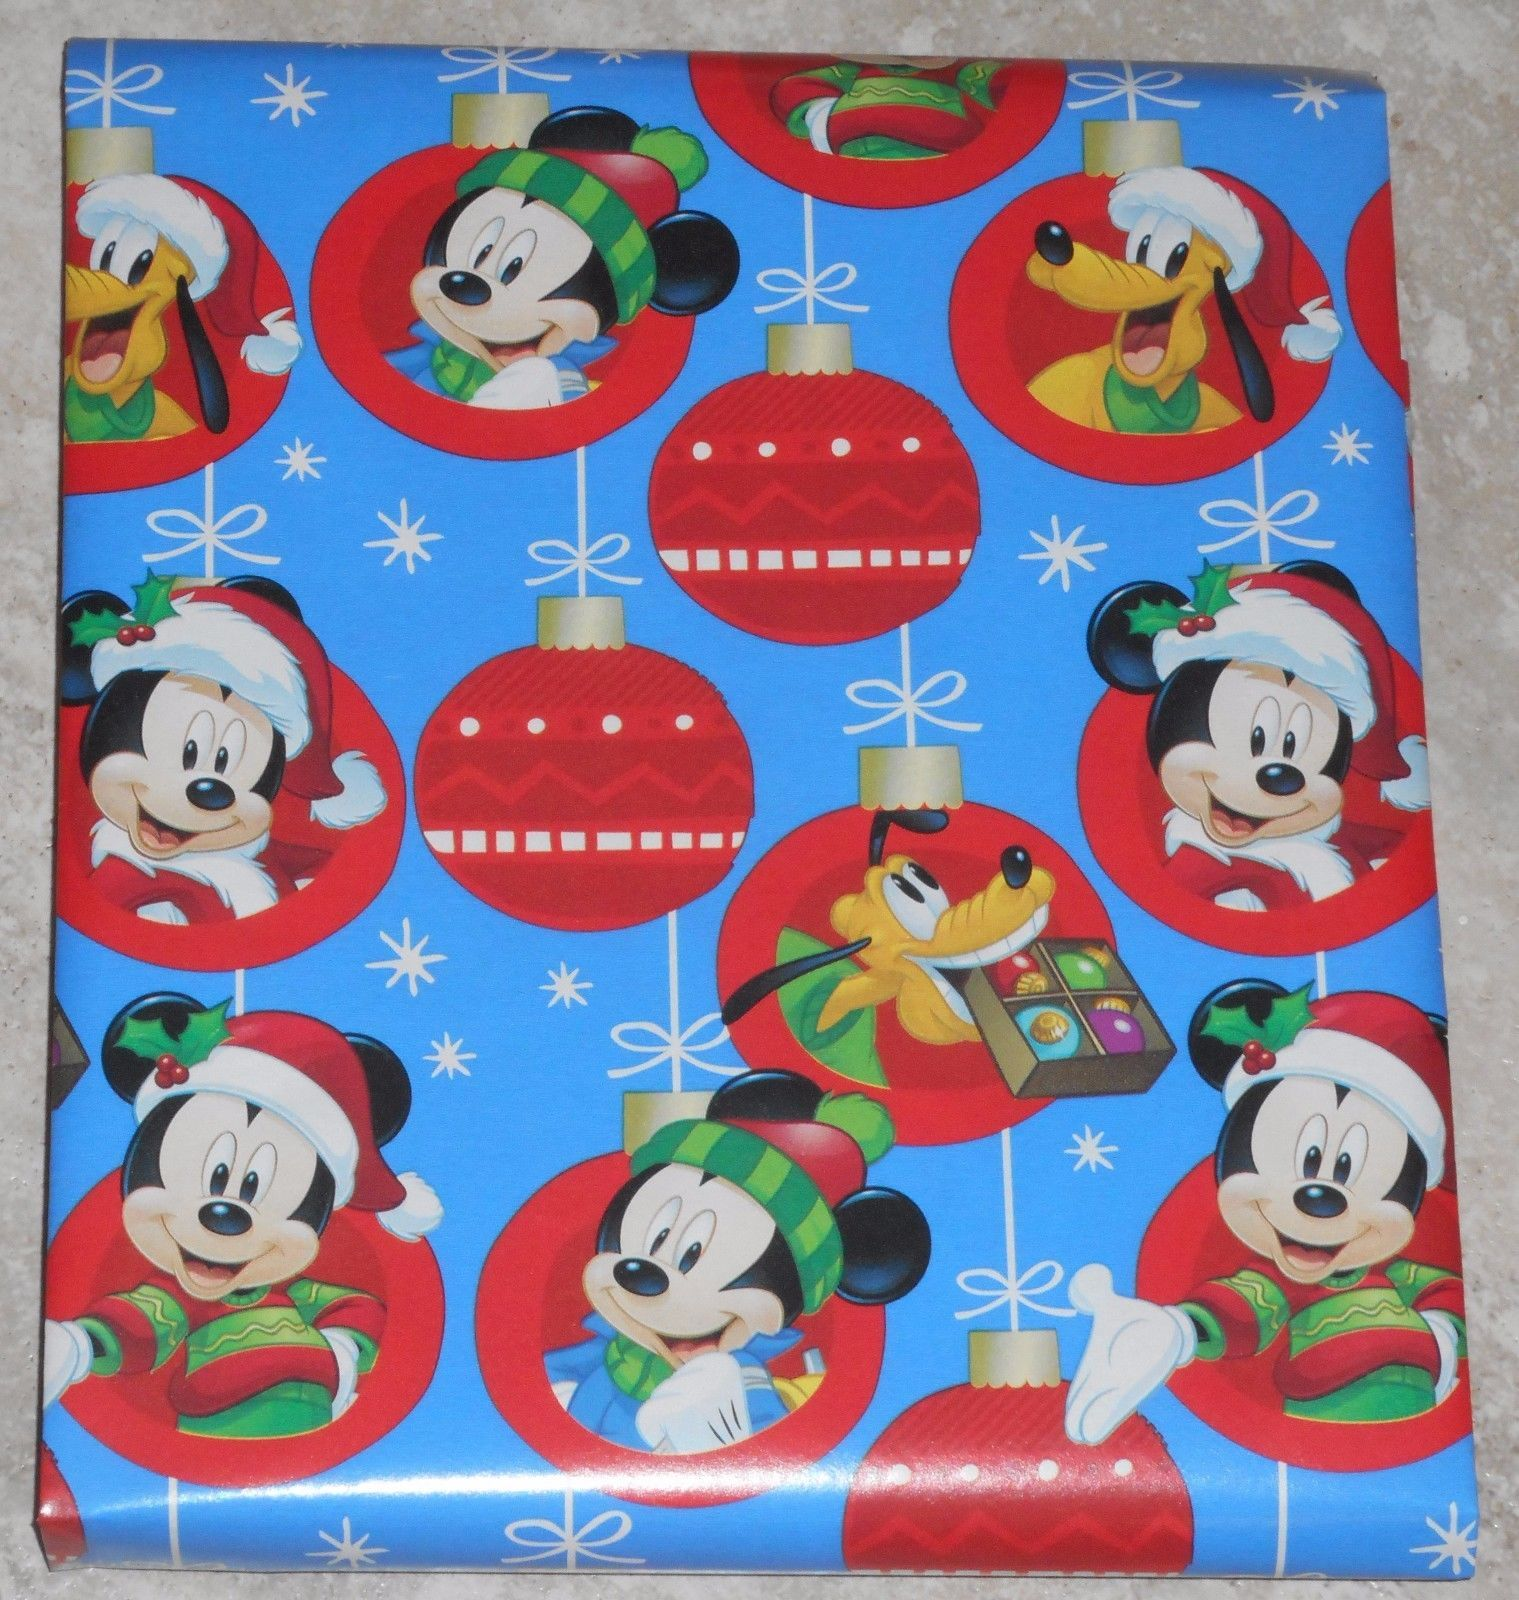 s l1600 s l1600 disney am greetings mickey mouse pluto christmas wrapping paper